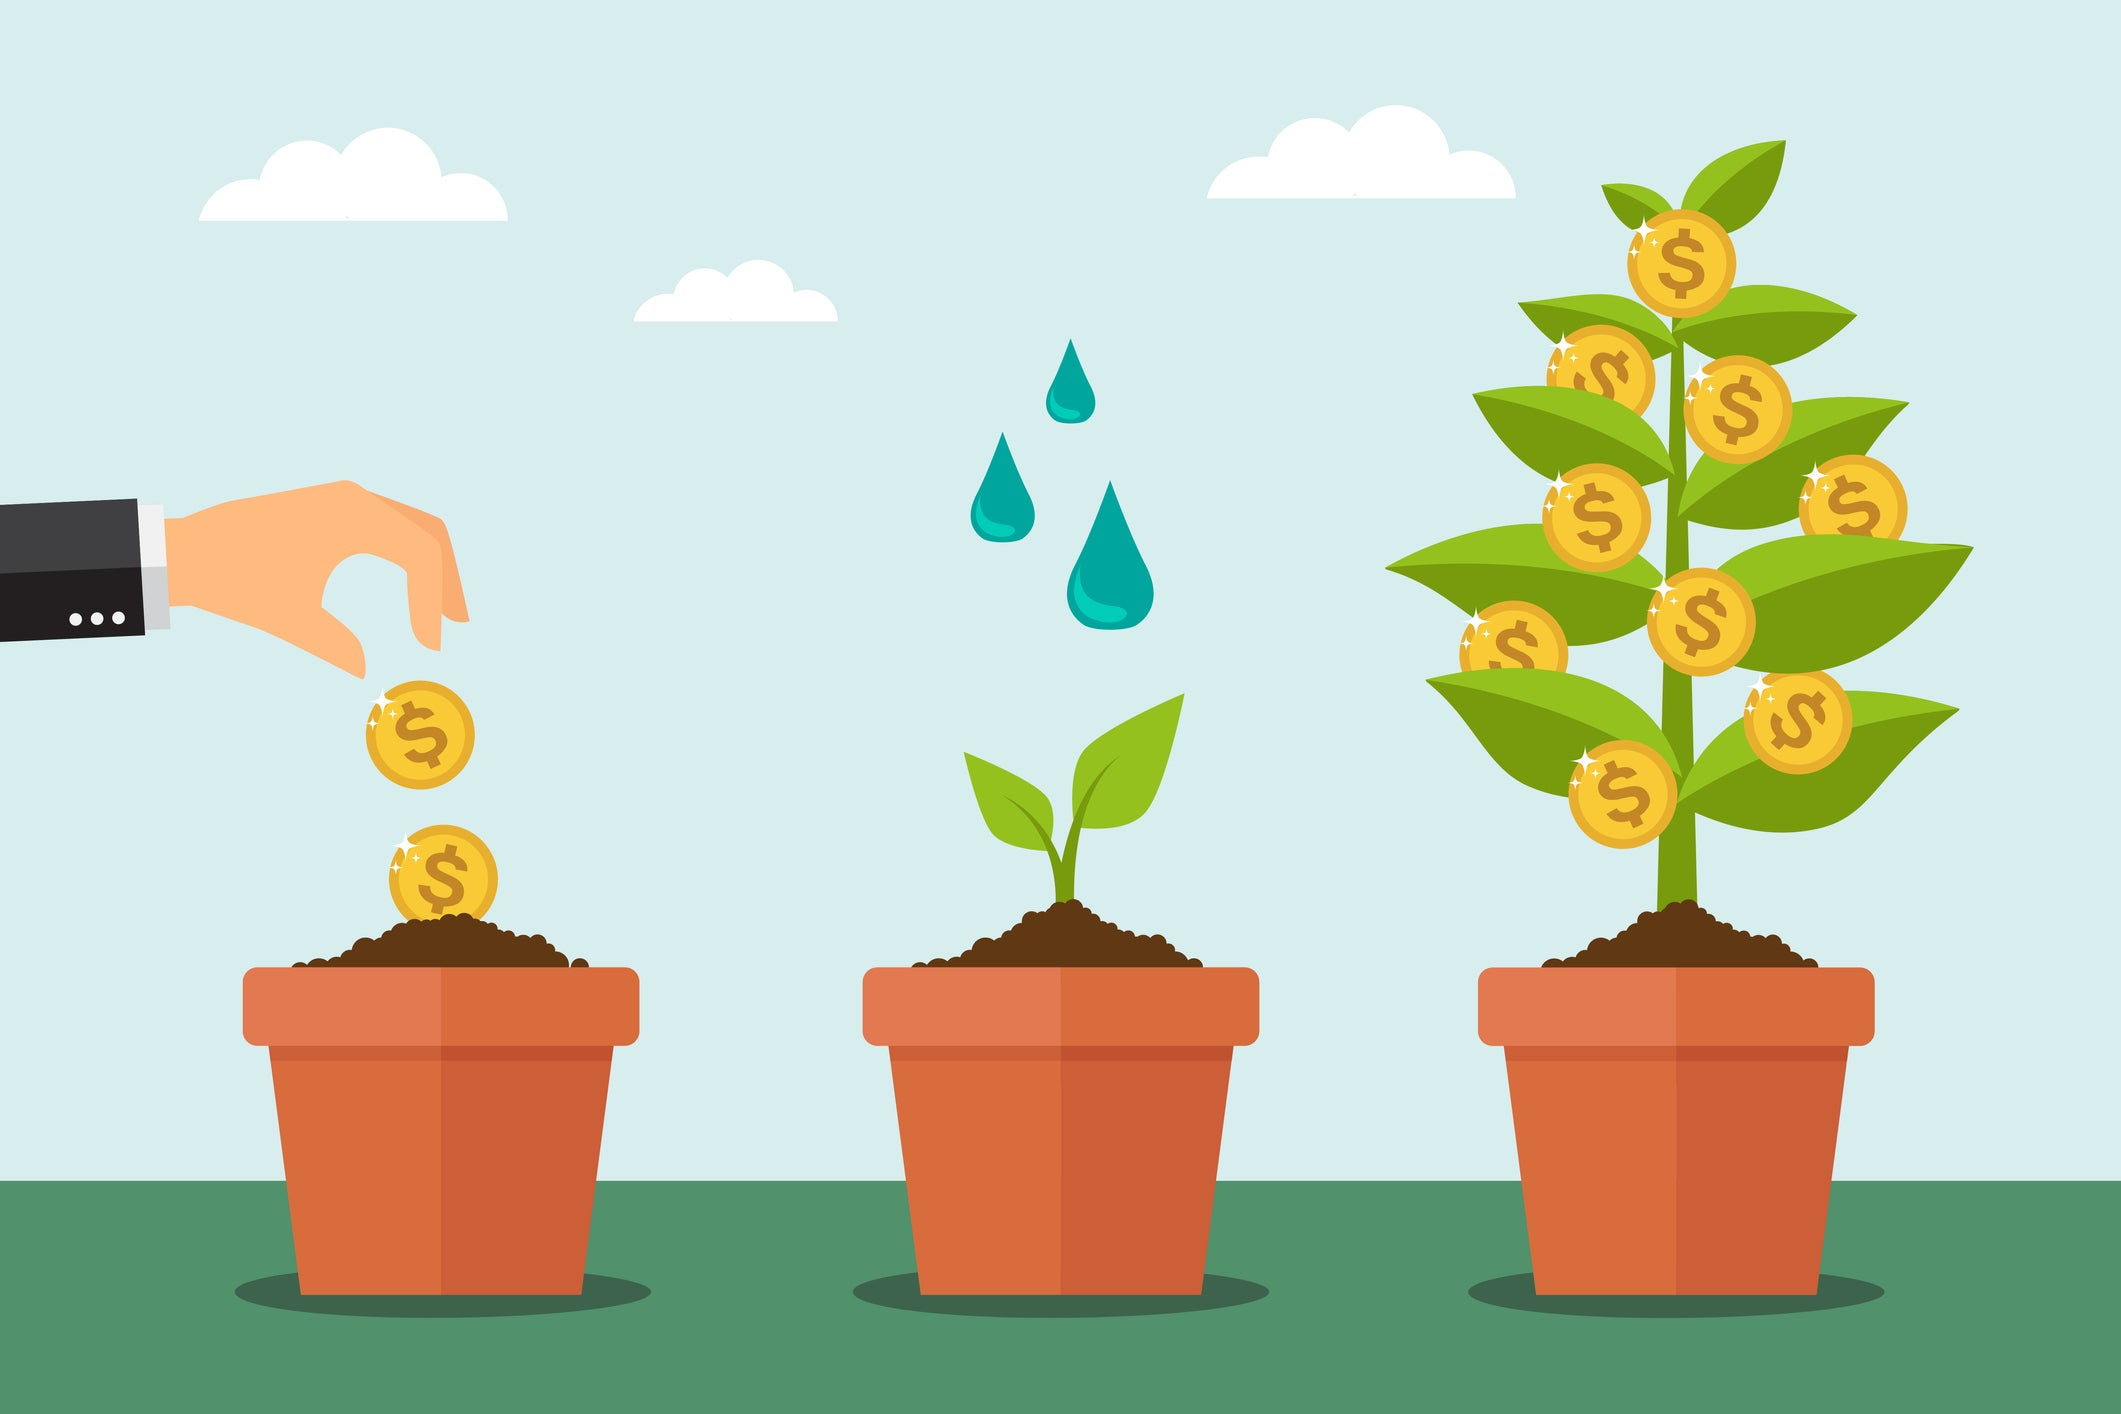 5 Ways to Make Your Money Work for You | The Motley Fool